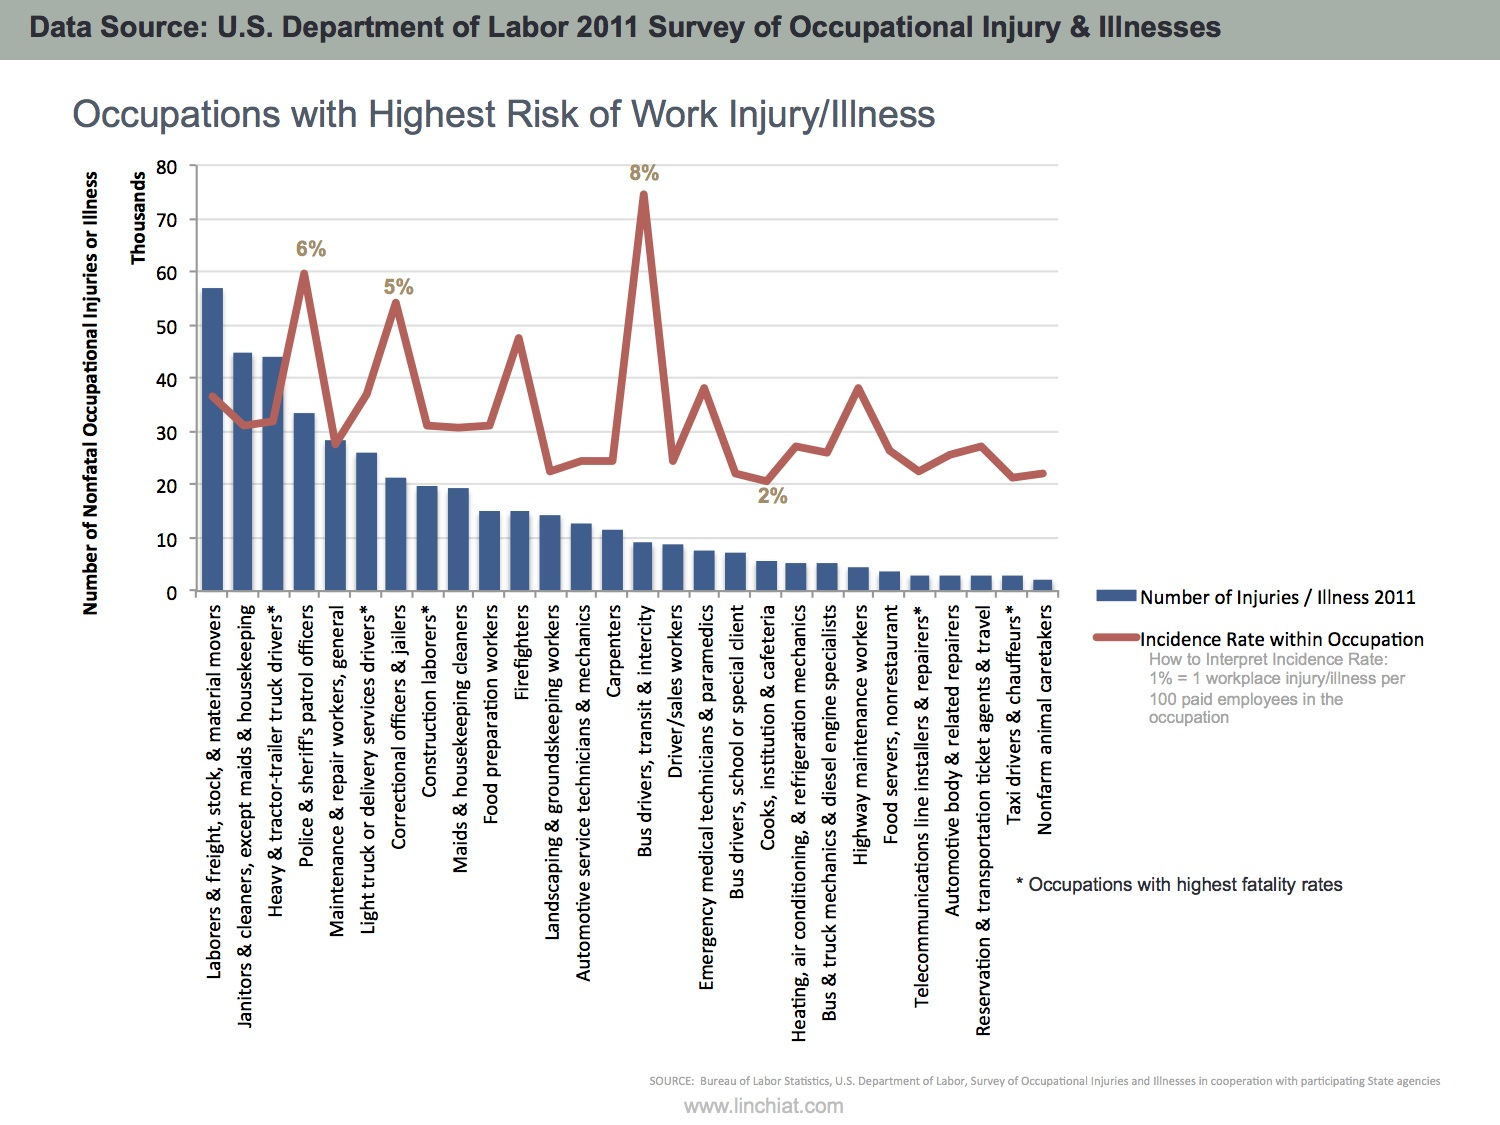 Occupations with highest risk of workplace injury/illness and fatalities